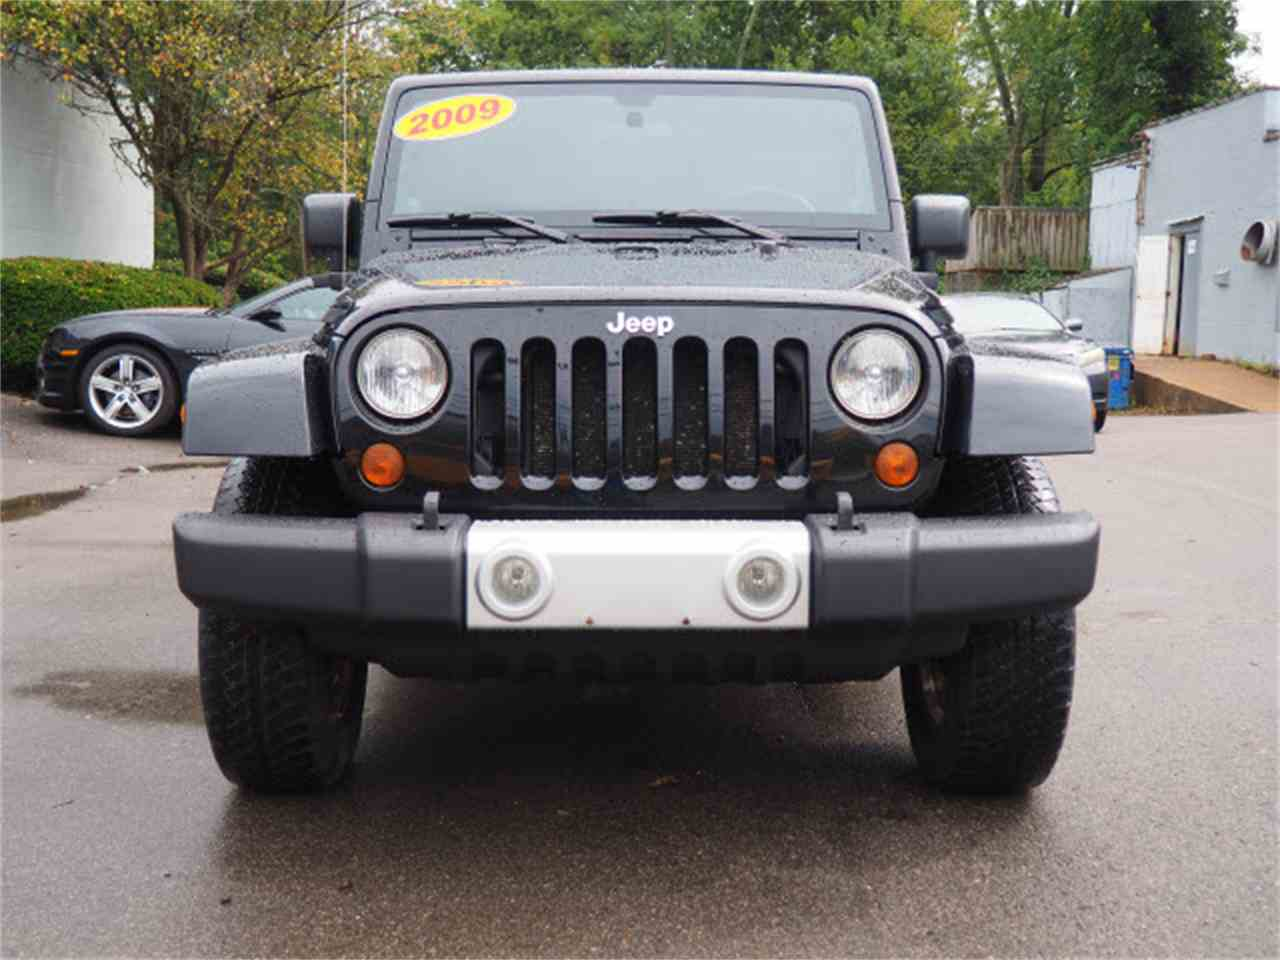 Large Picture of 2009 Jeep Wrangler located in Ohio - $17,000.00 Offered by Cincinnati Auto Wholesale - LWMR